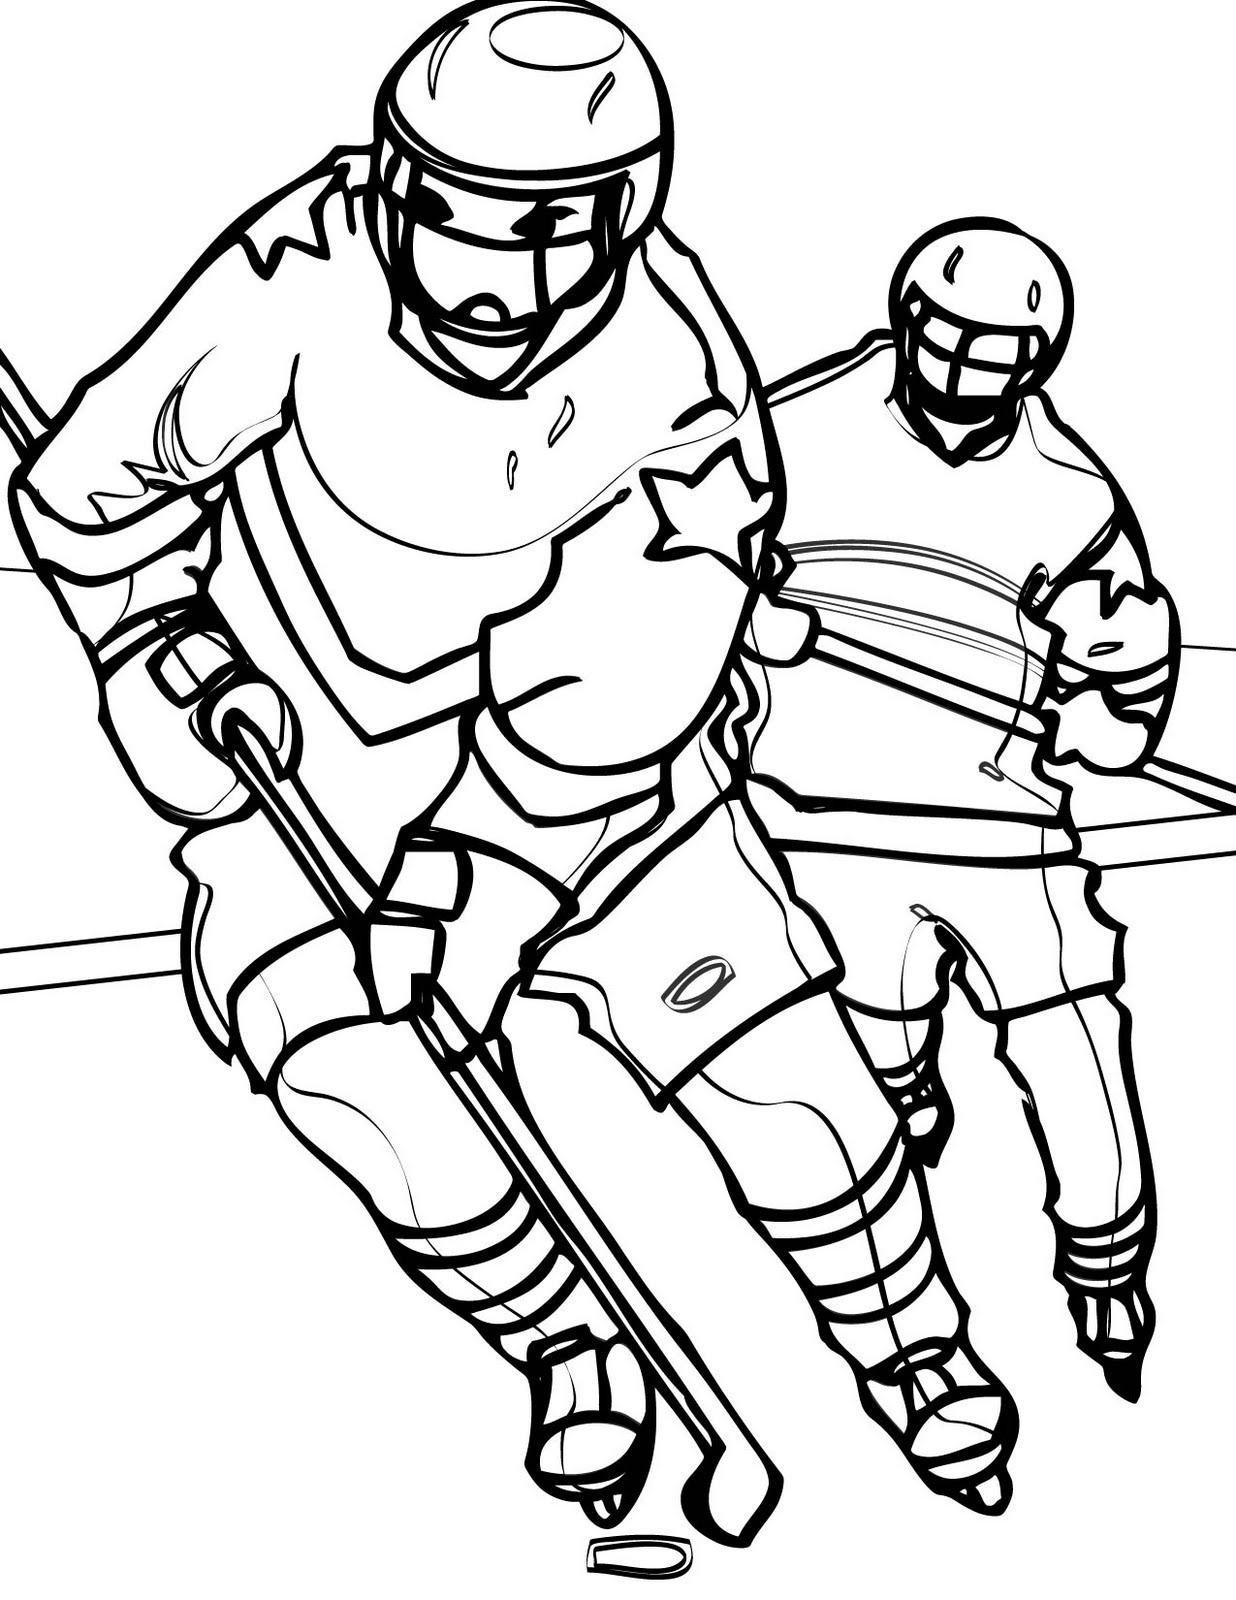 hockey players coloring pages cartoon hockey players clipartsco coloring hockey pages players